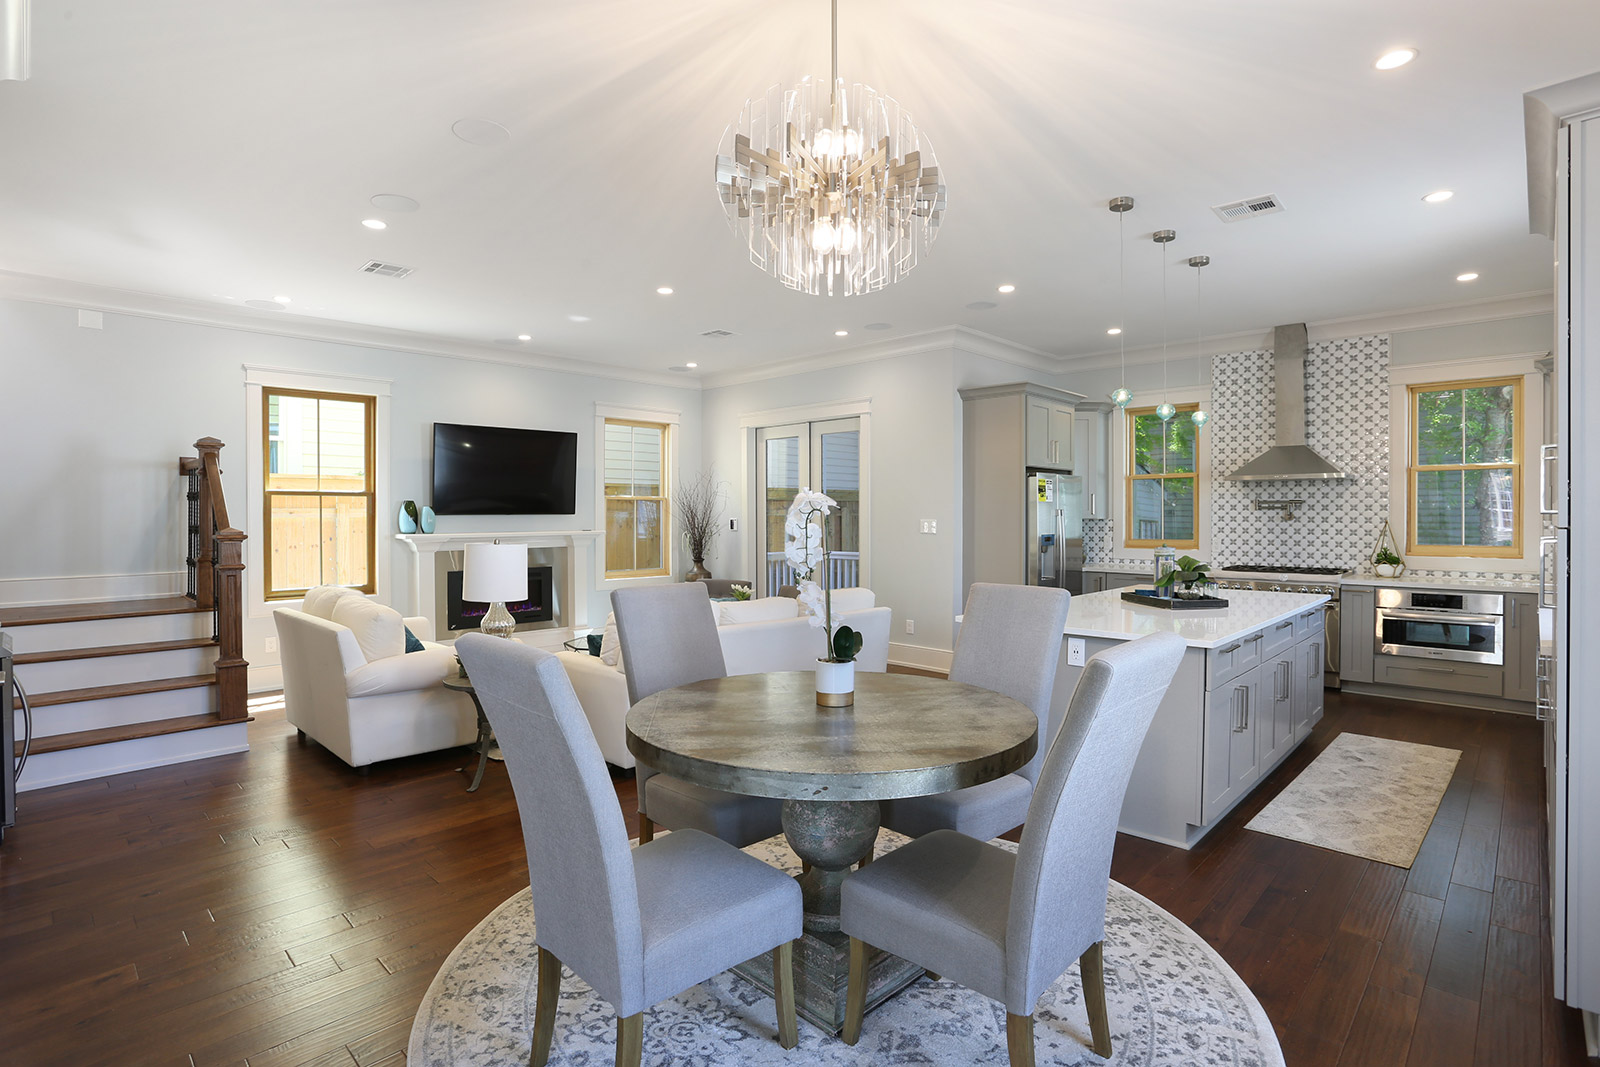 2370 Annunciation St (Image - 3)